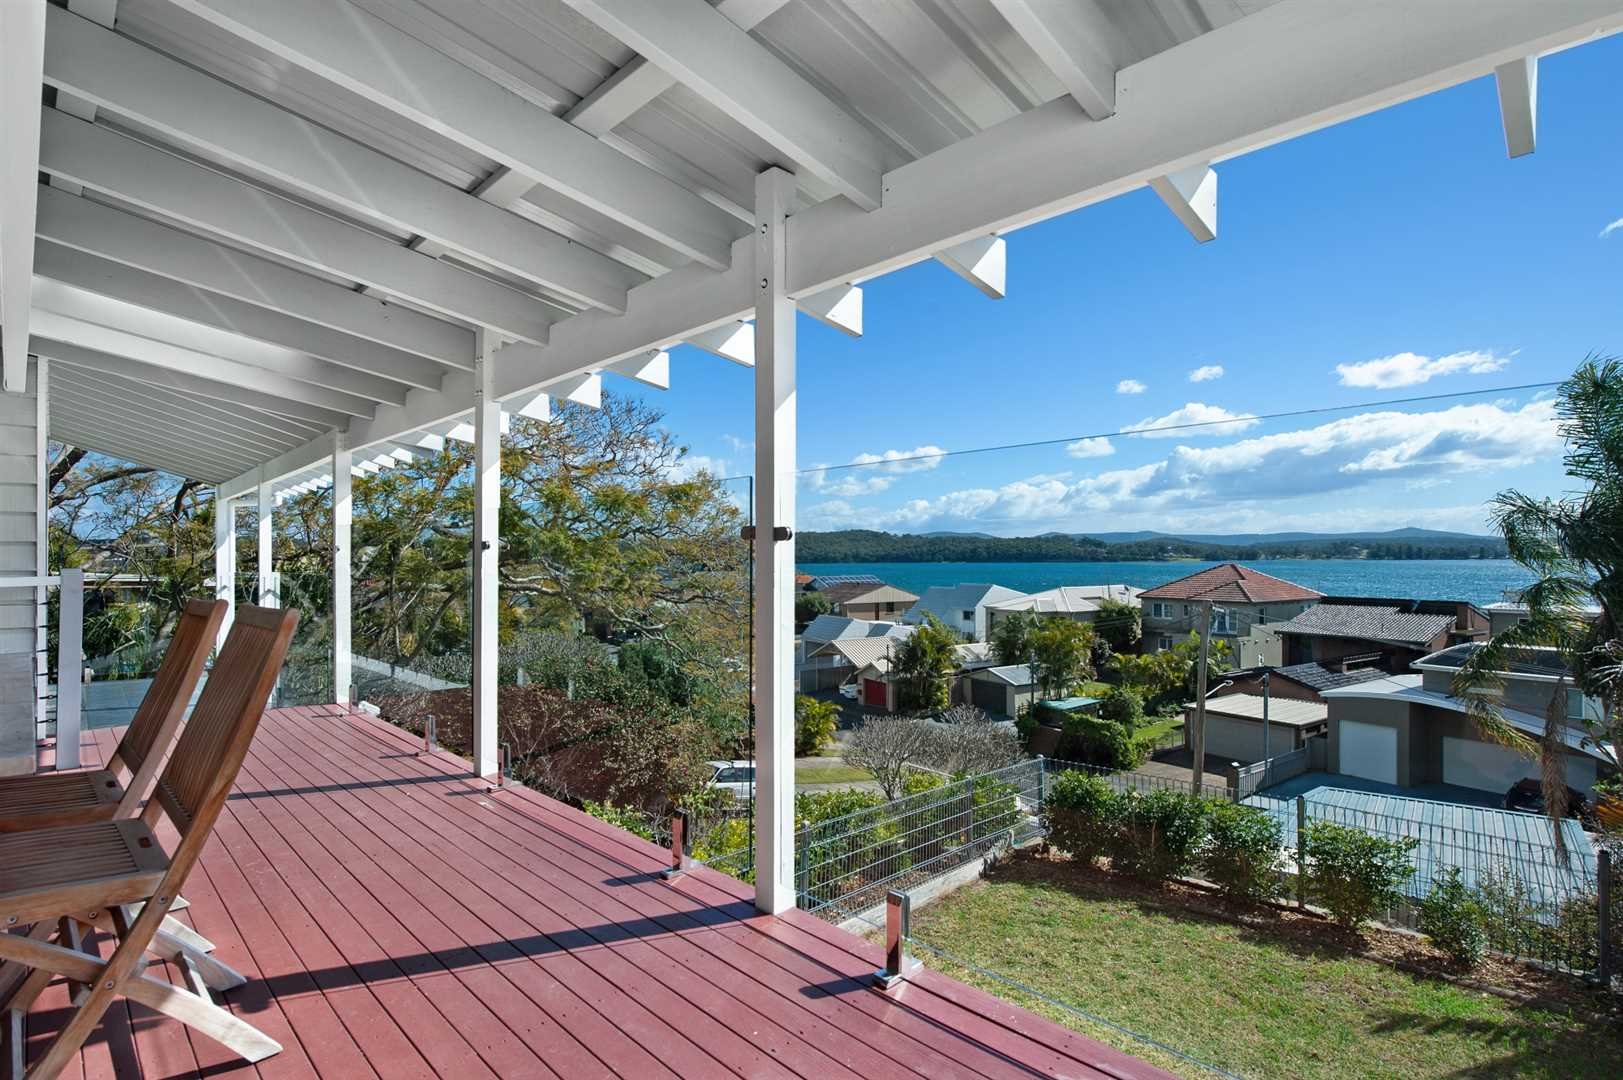 Perfectly Positioned to Enjoy the Lakeside Lifestyle